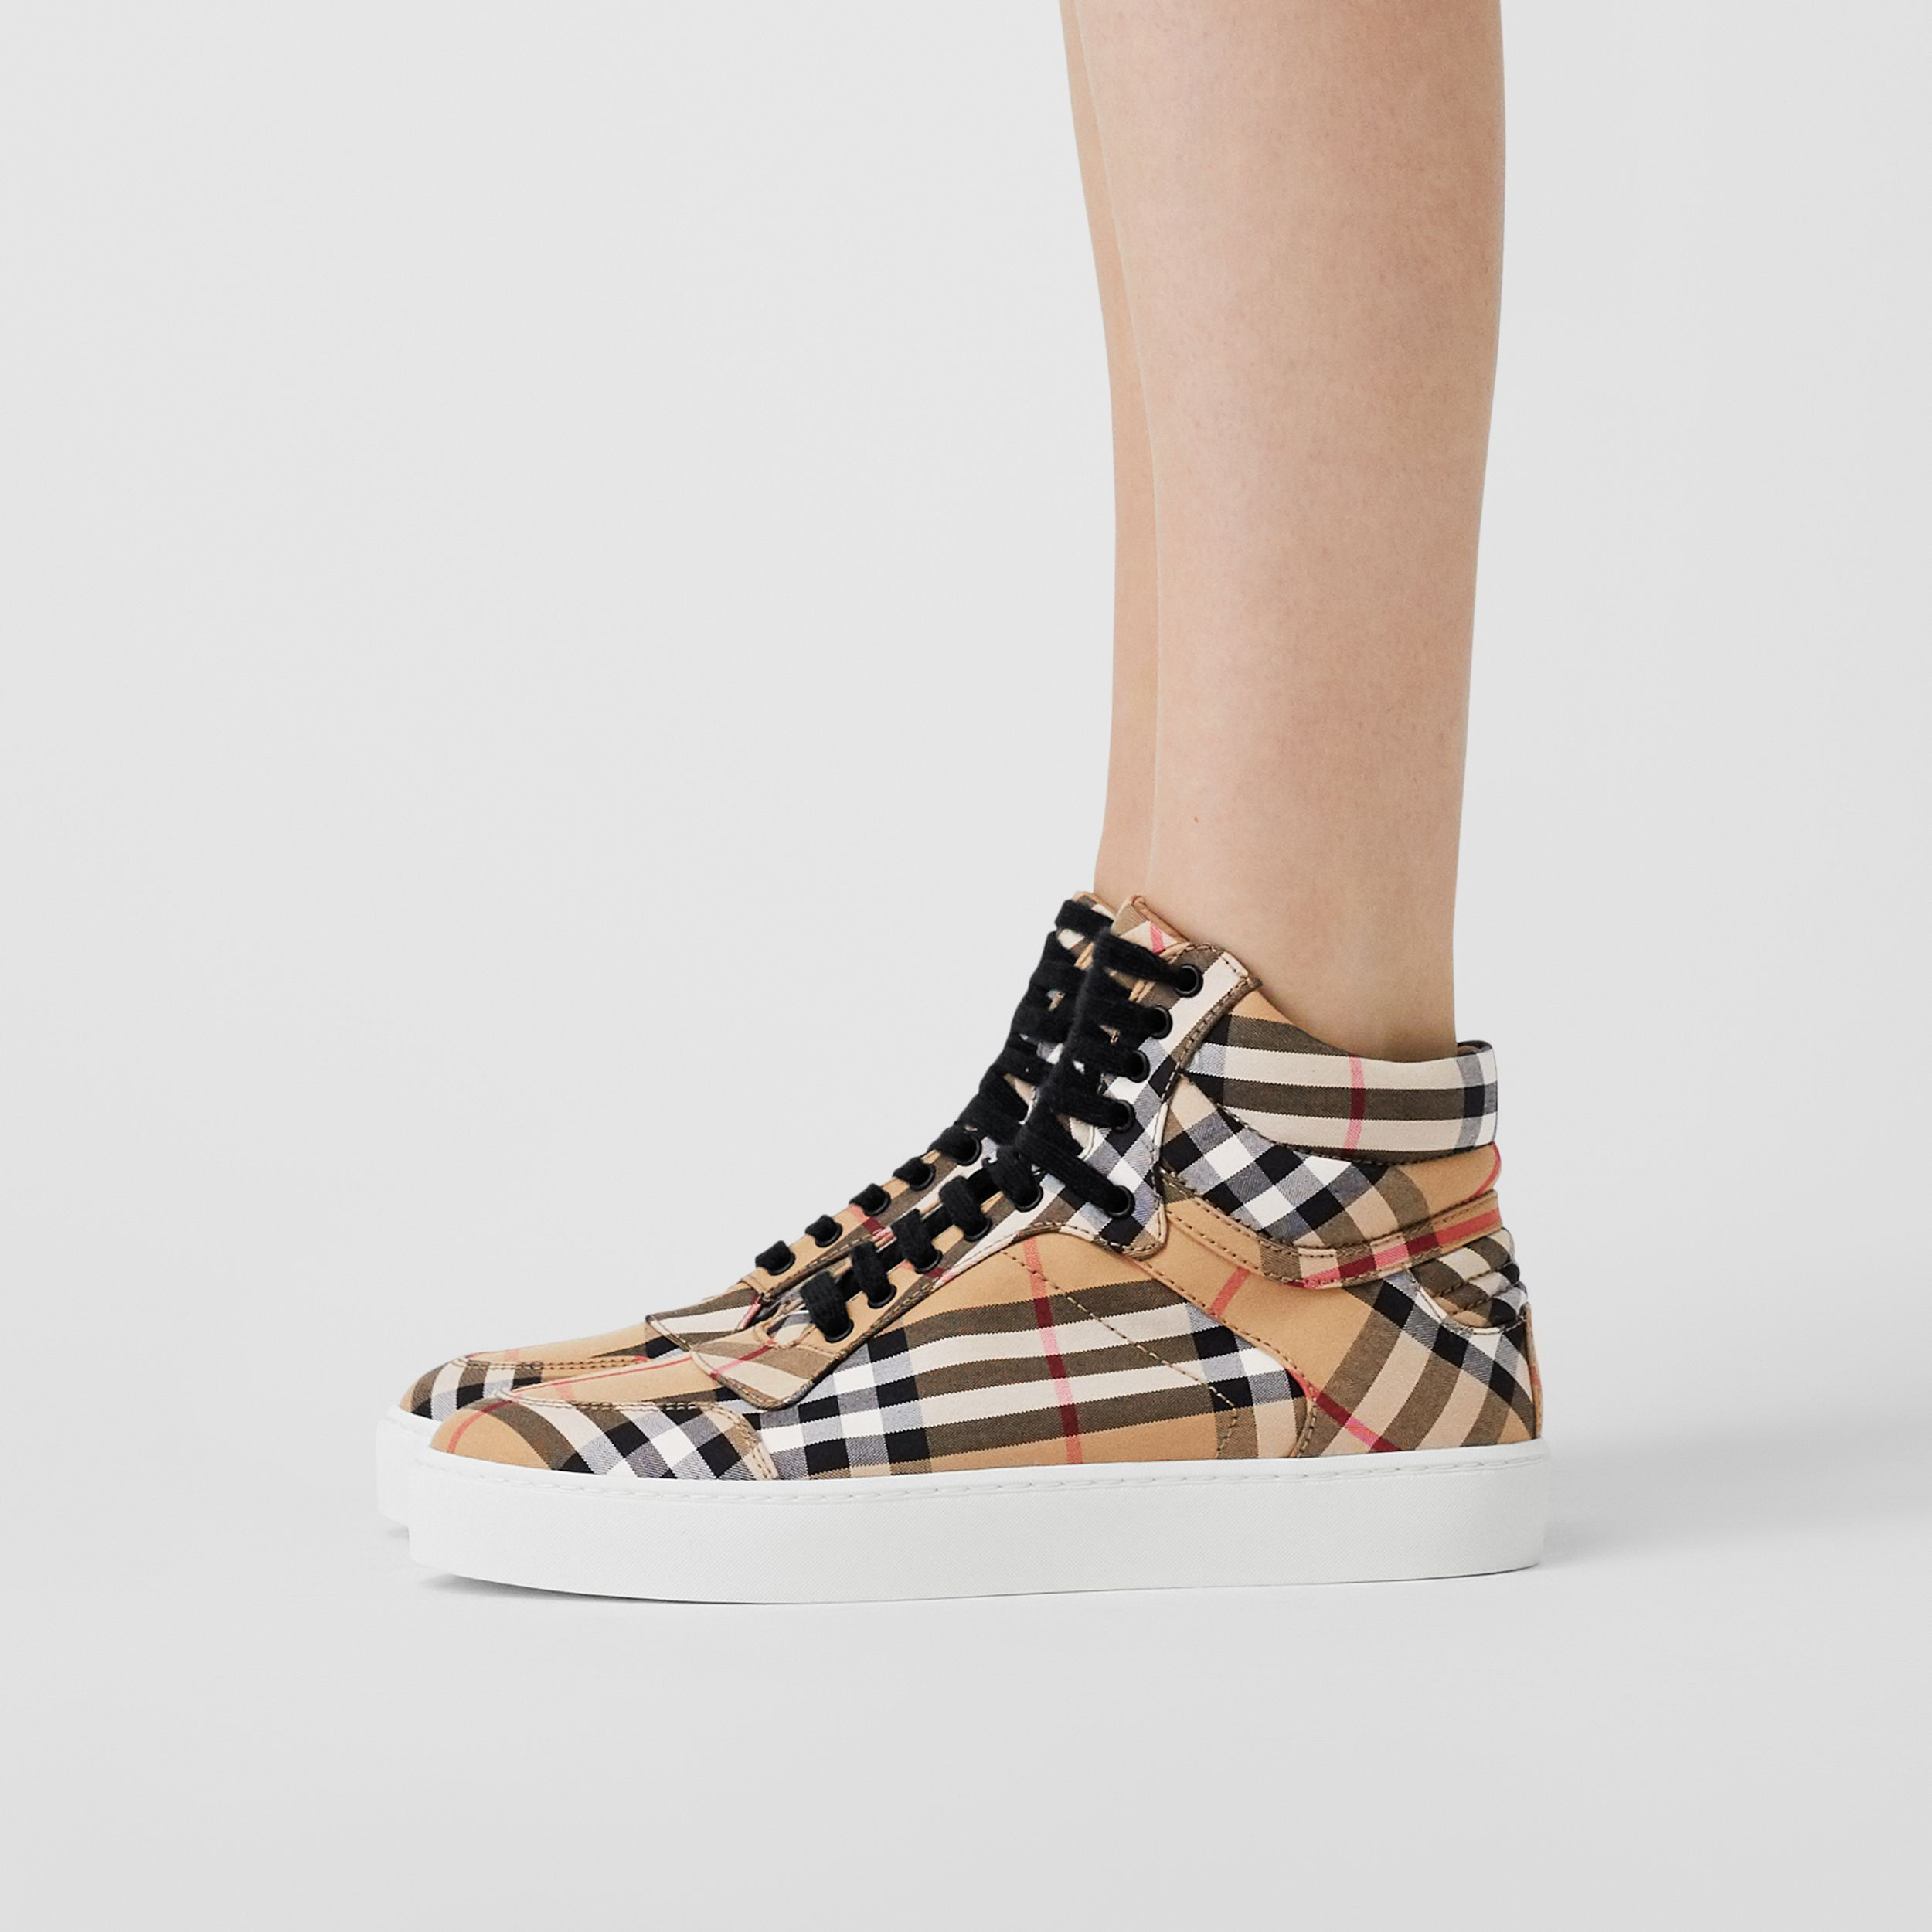 Vintage Check Cotton High-top Sneakers in Antique Yellow - Women | Burberry United Kingdom - 3